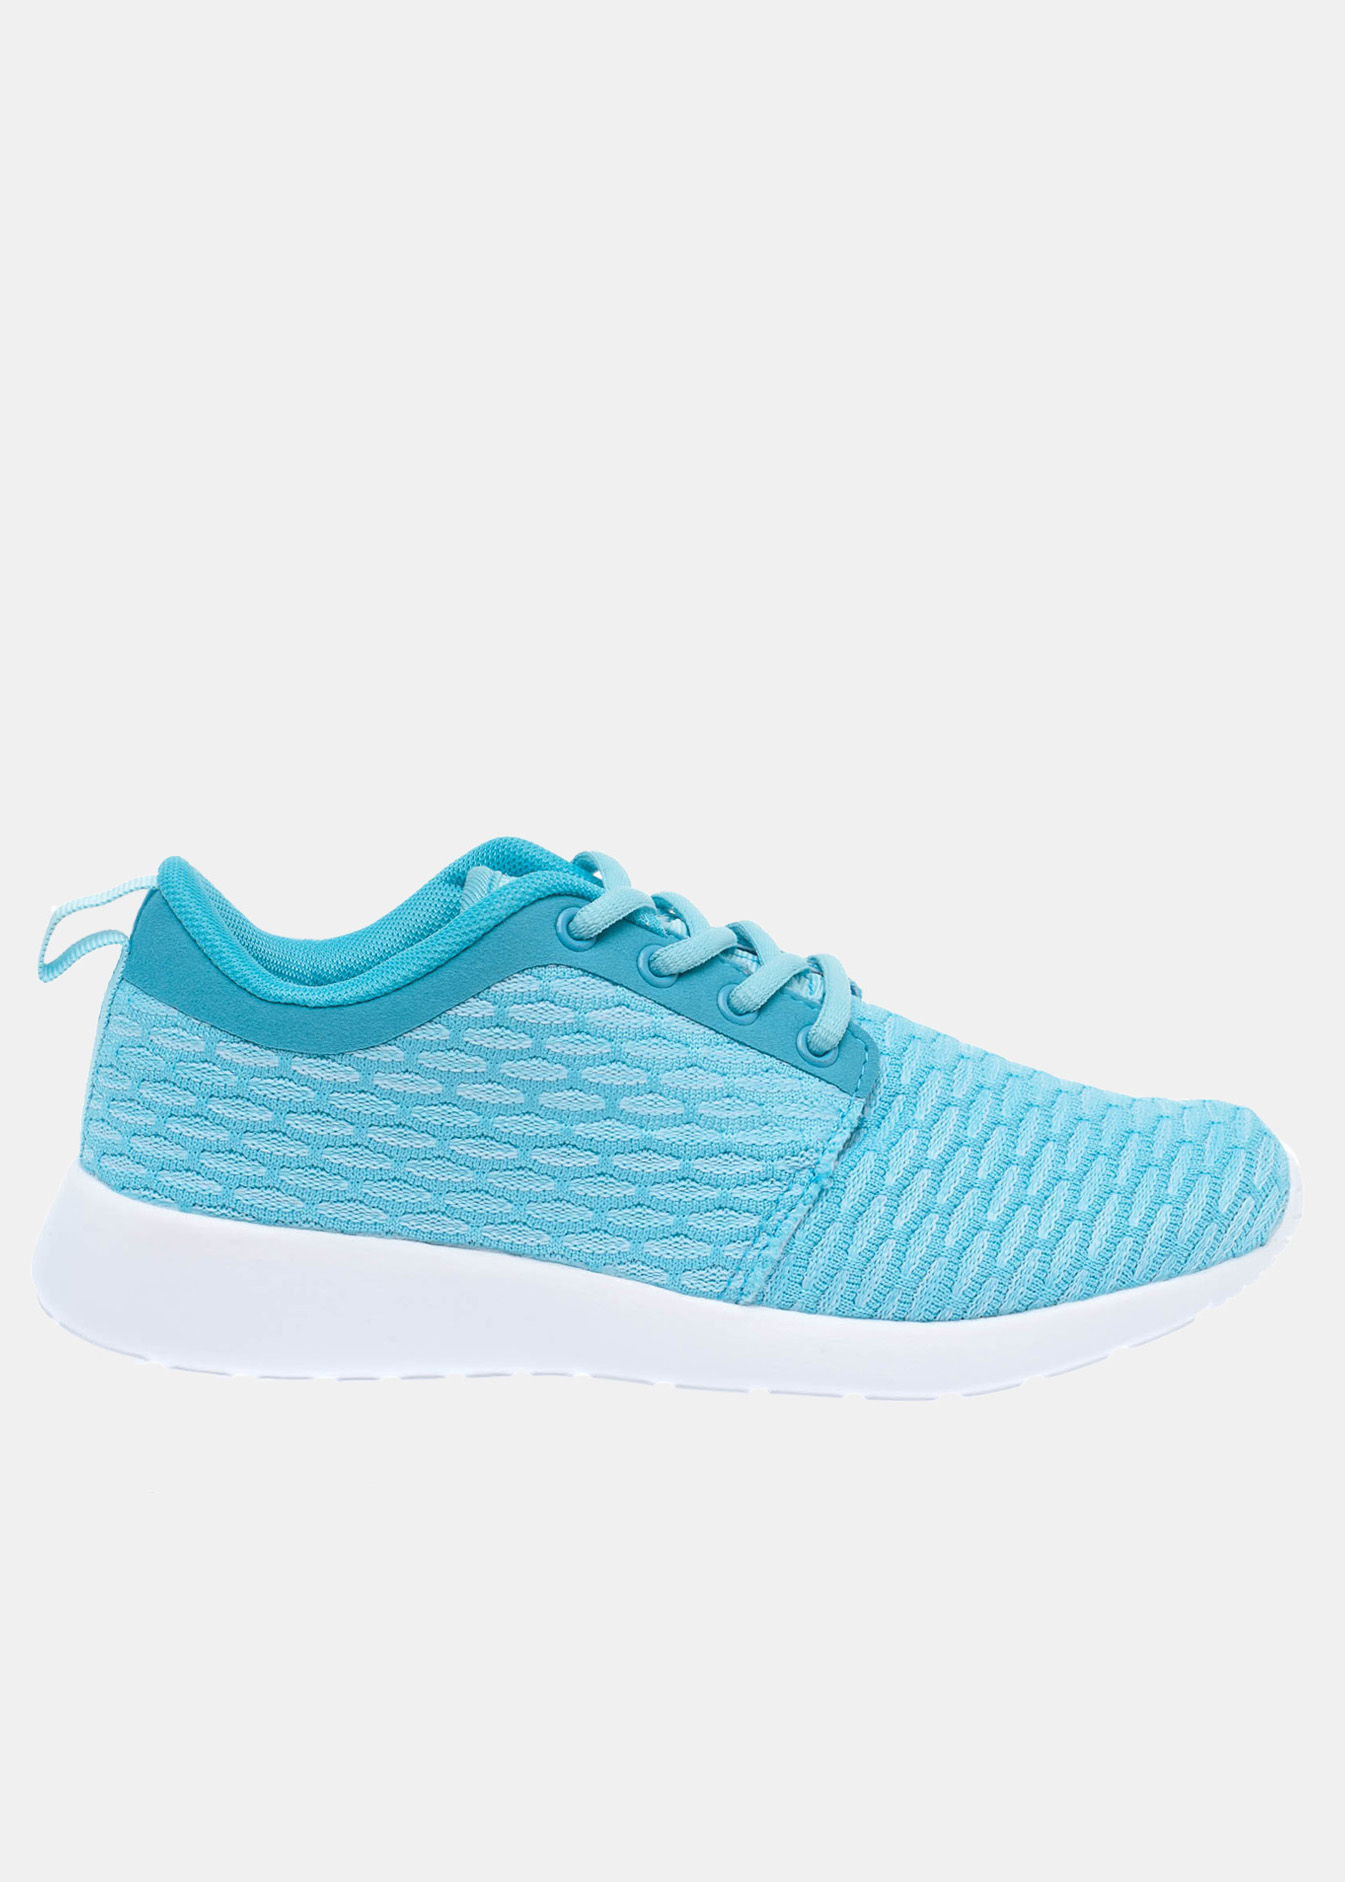 Gracie sneaker με λευκή σόλα, γαλάζιο loafers